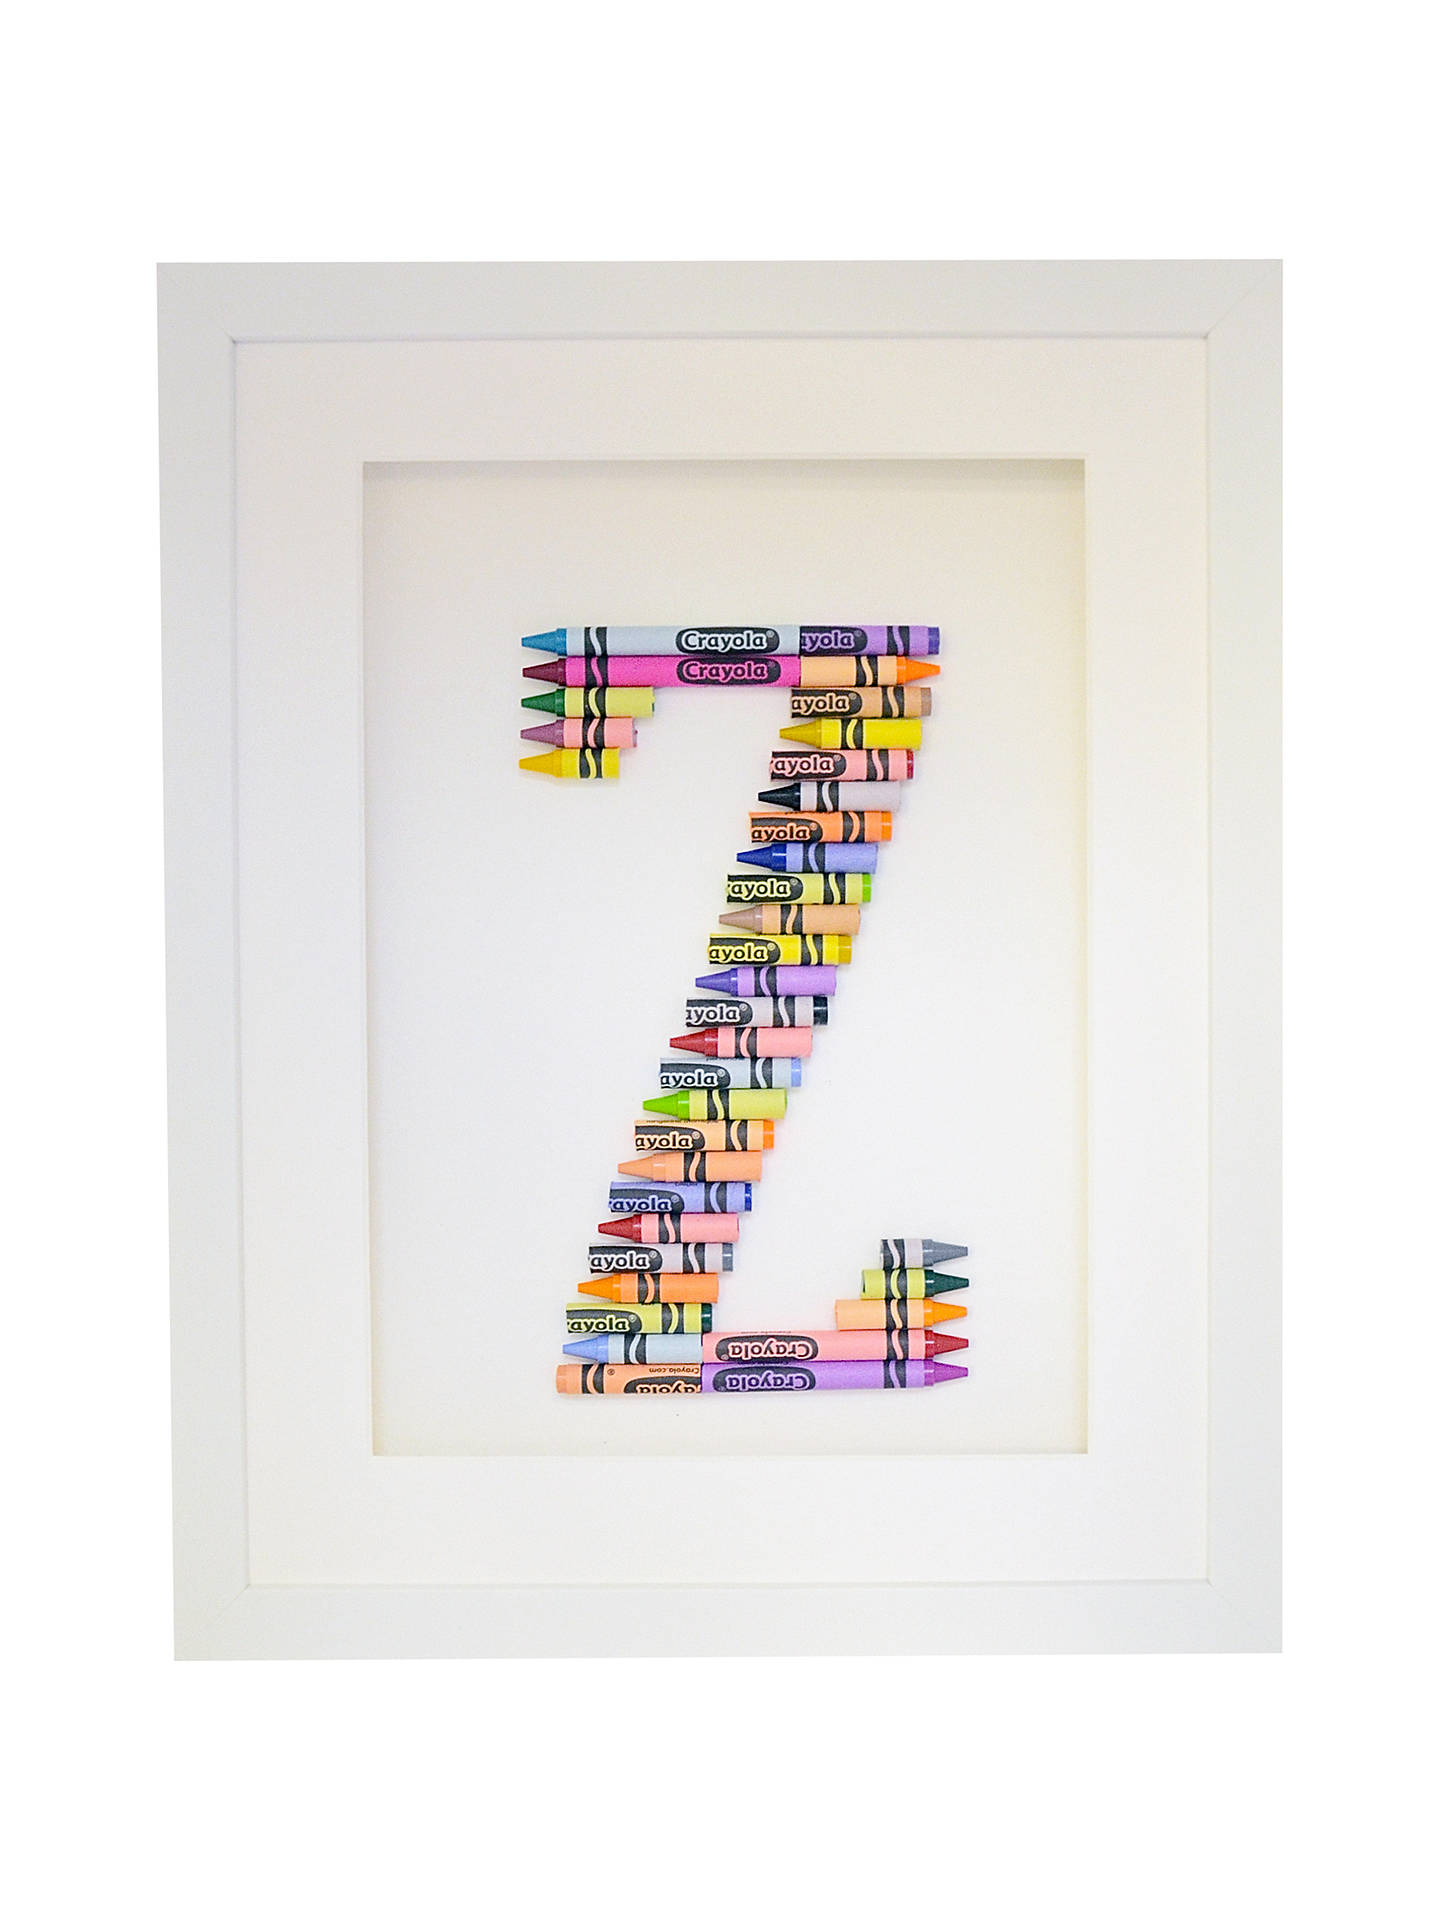 Buy The Letteroom Crayon Z Framed 3D Artwork, 34 x 29cm Online at johnlewis.com